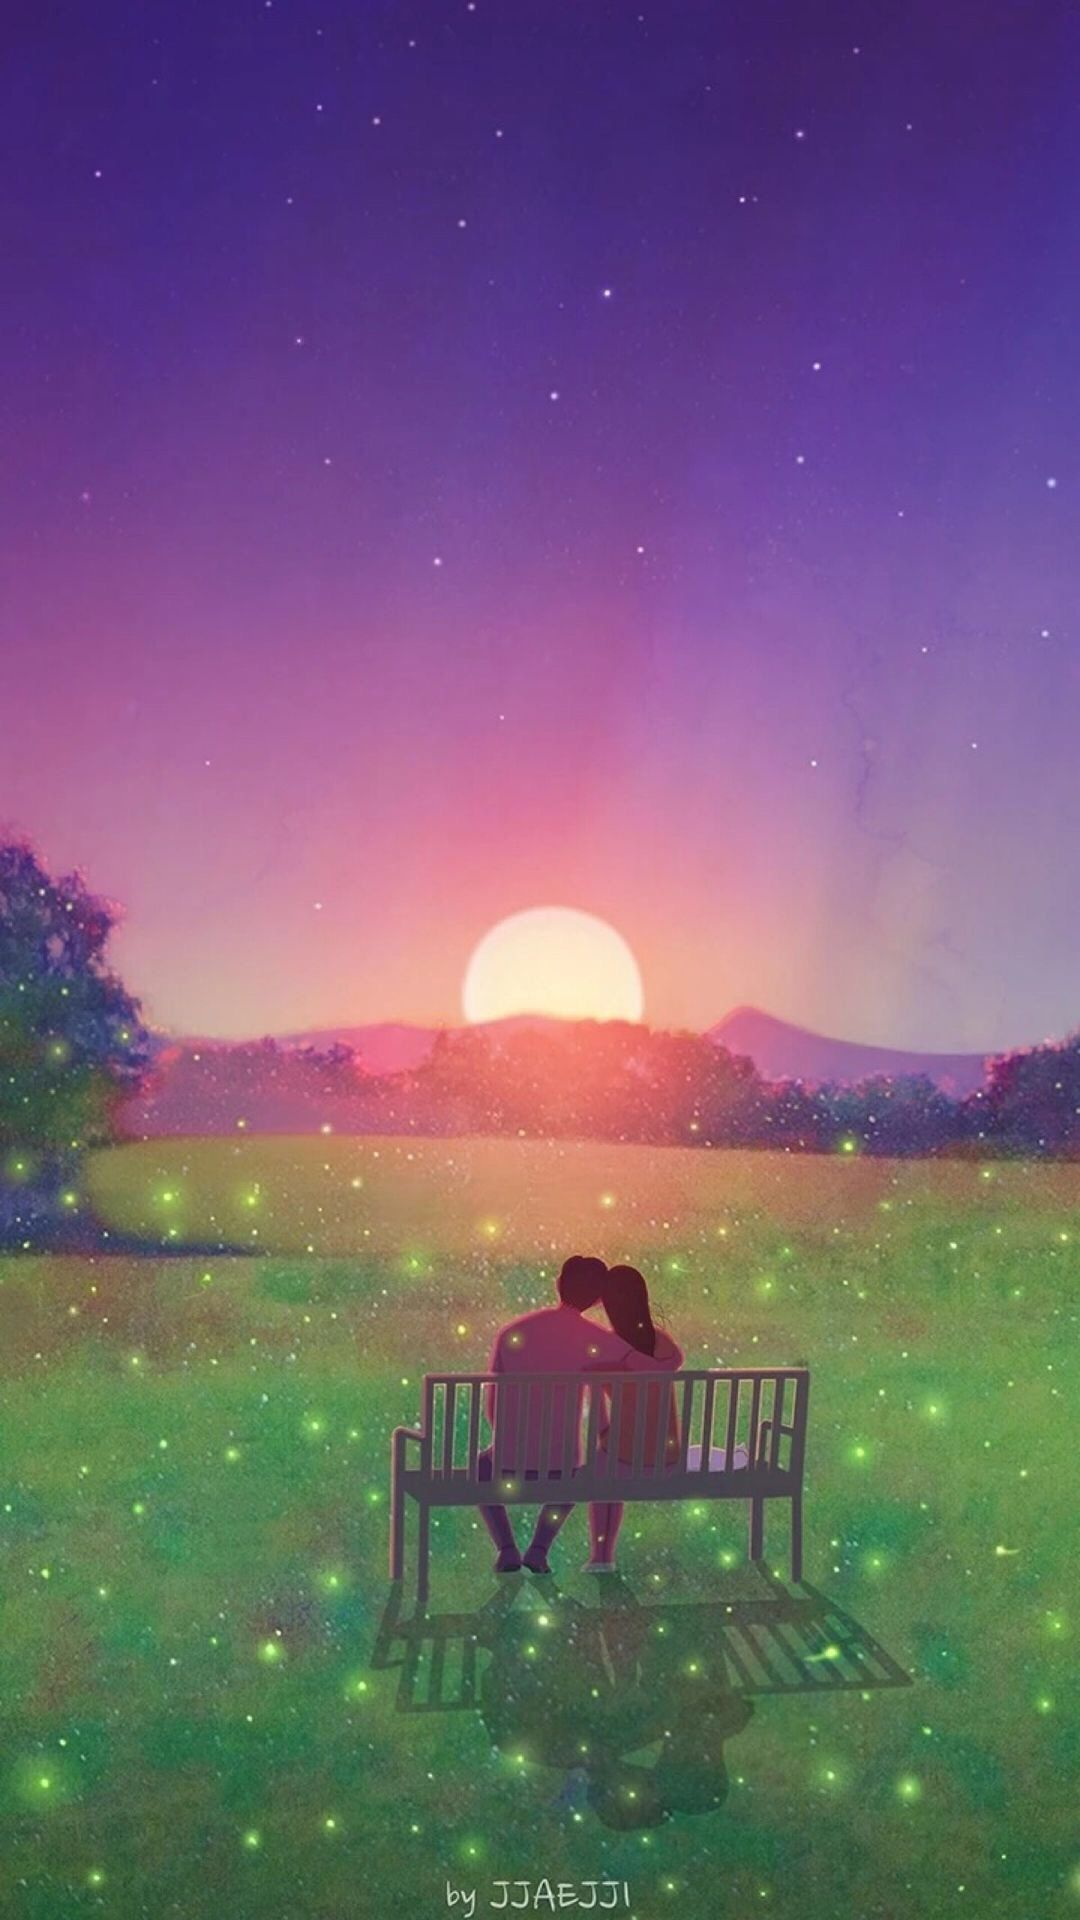 Pin by Sarah on iPhone wallpaper Cute couple art, Love